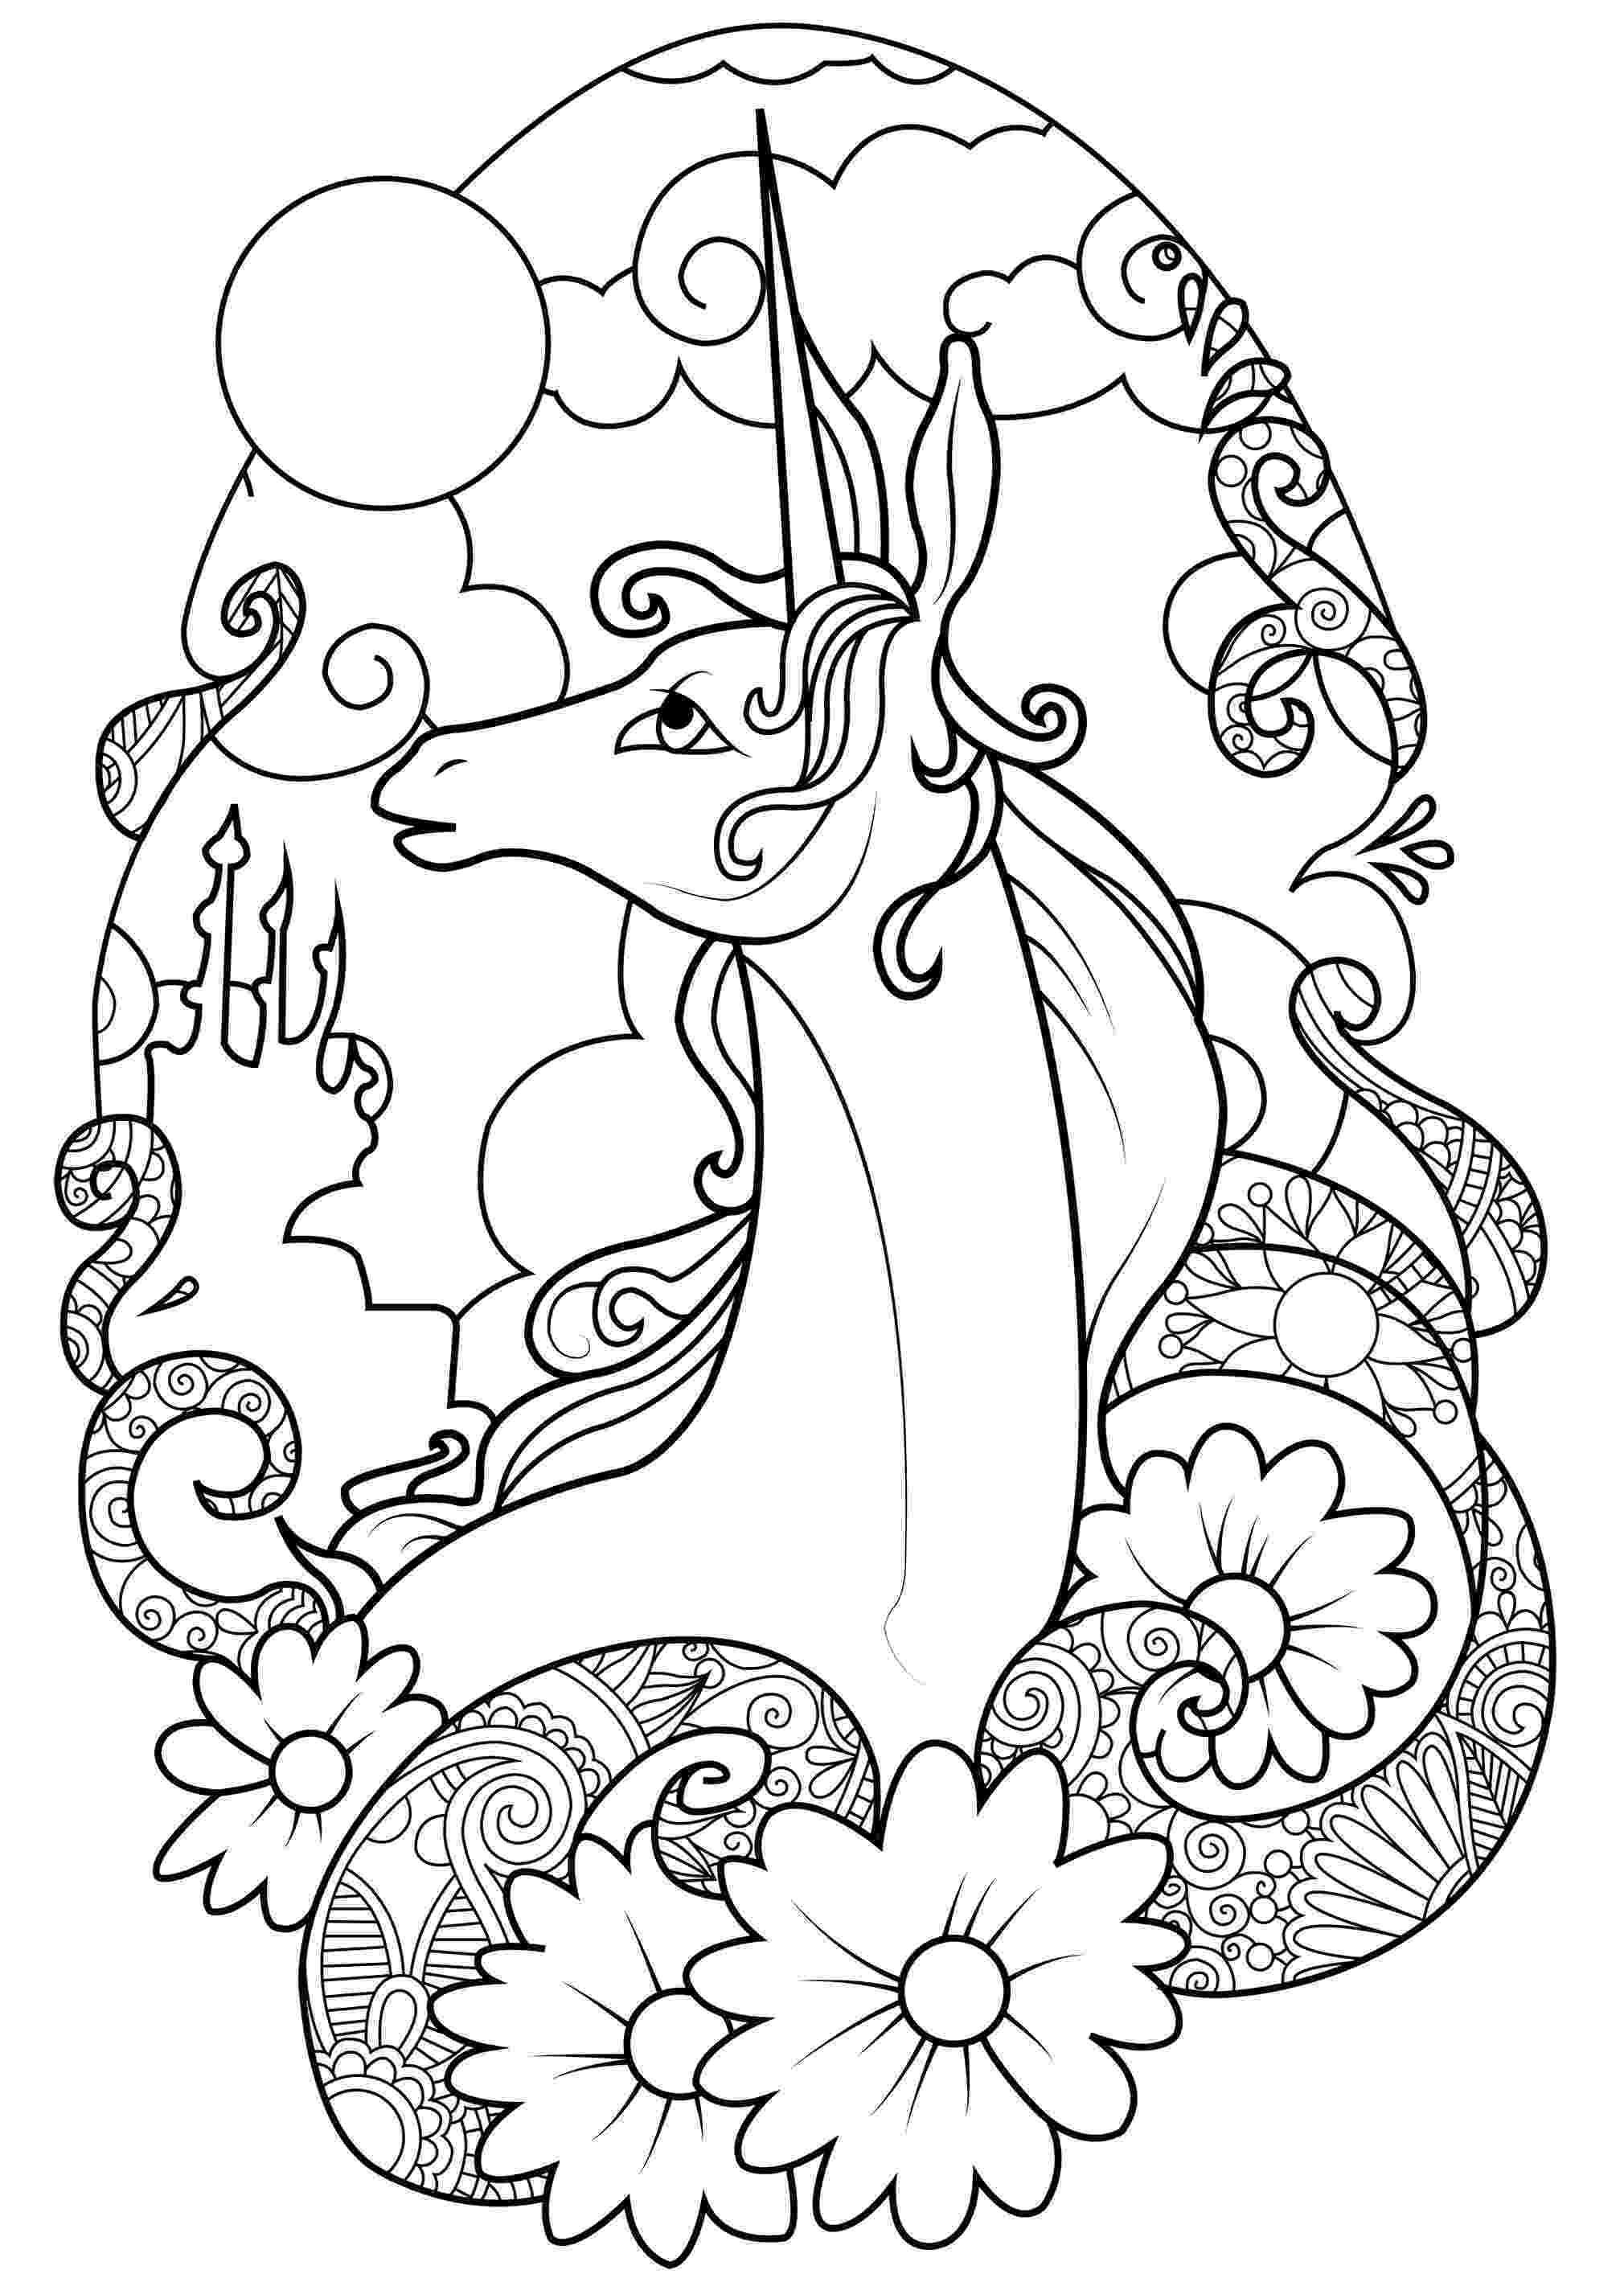 unicorn printable coloring pages free printable unicorn coloring pages for kids printable coloring pages unicorn